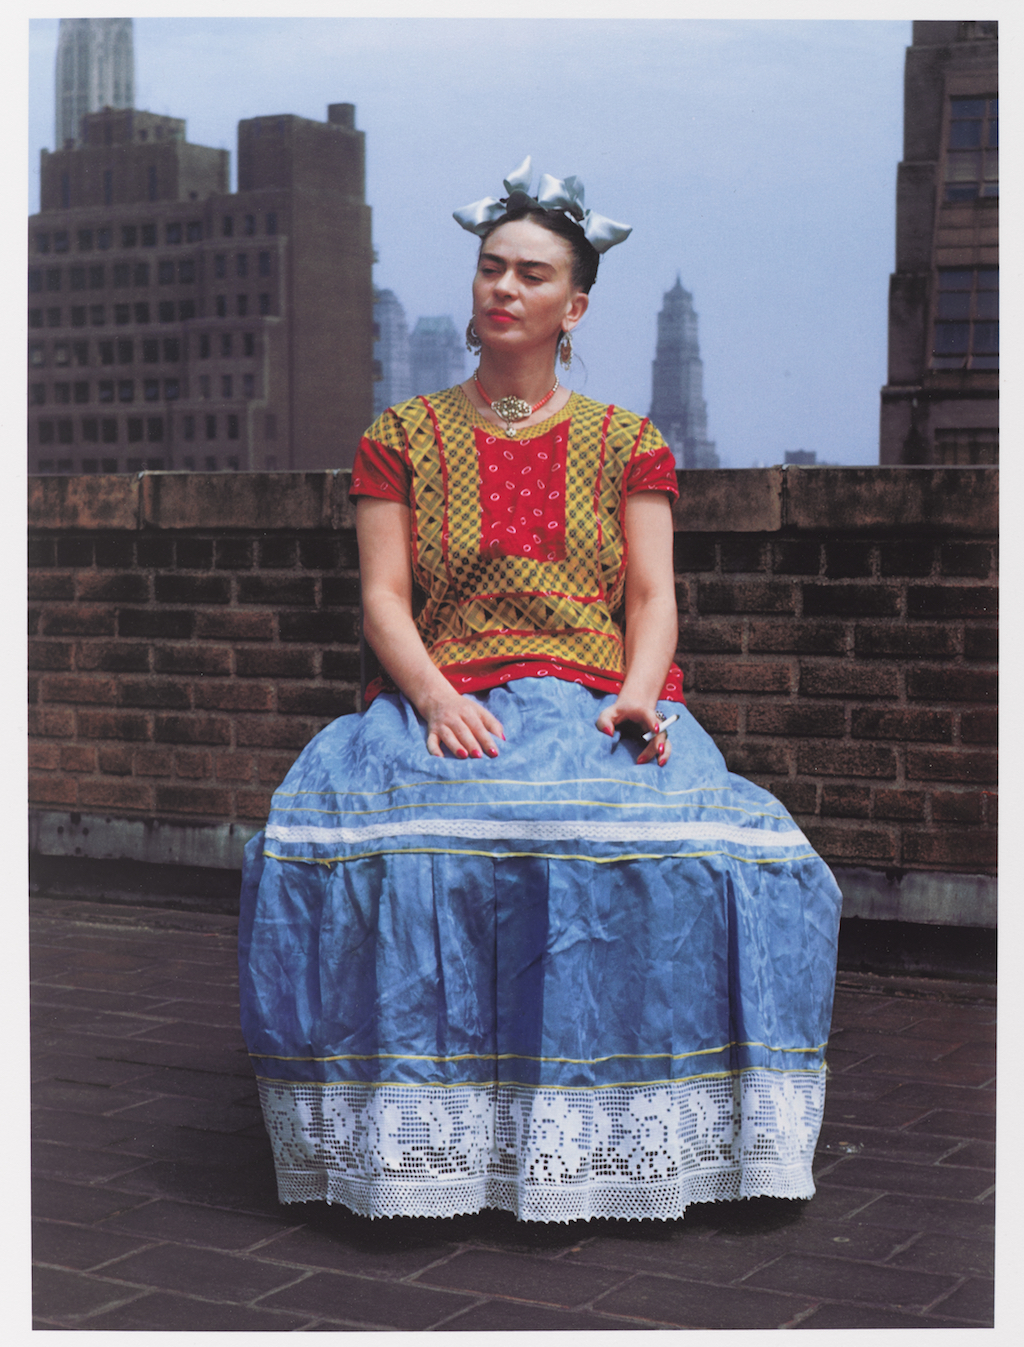 From the Archives: Anita Brenner on Frida Kahlo, Diego Rivera, and Rufino Tamayo, in 1953